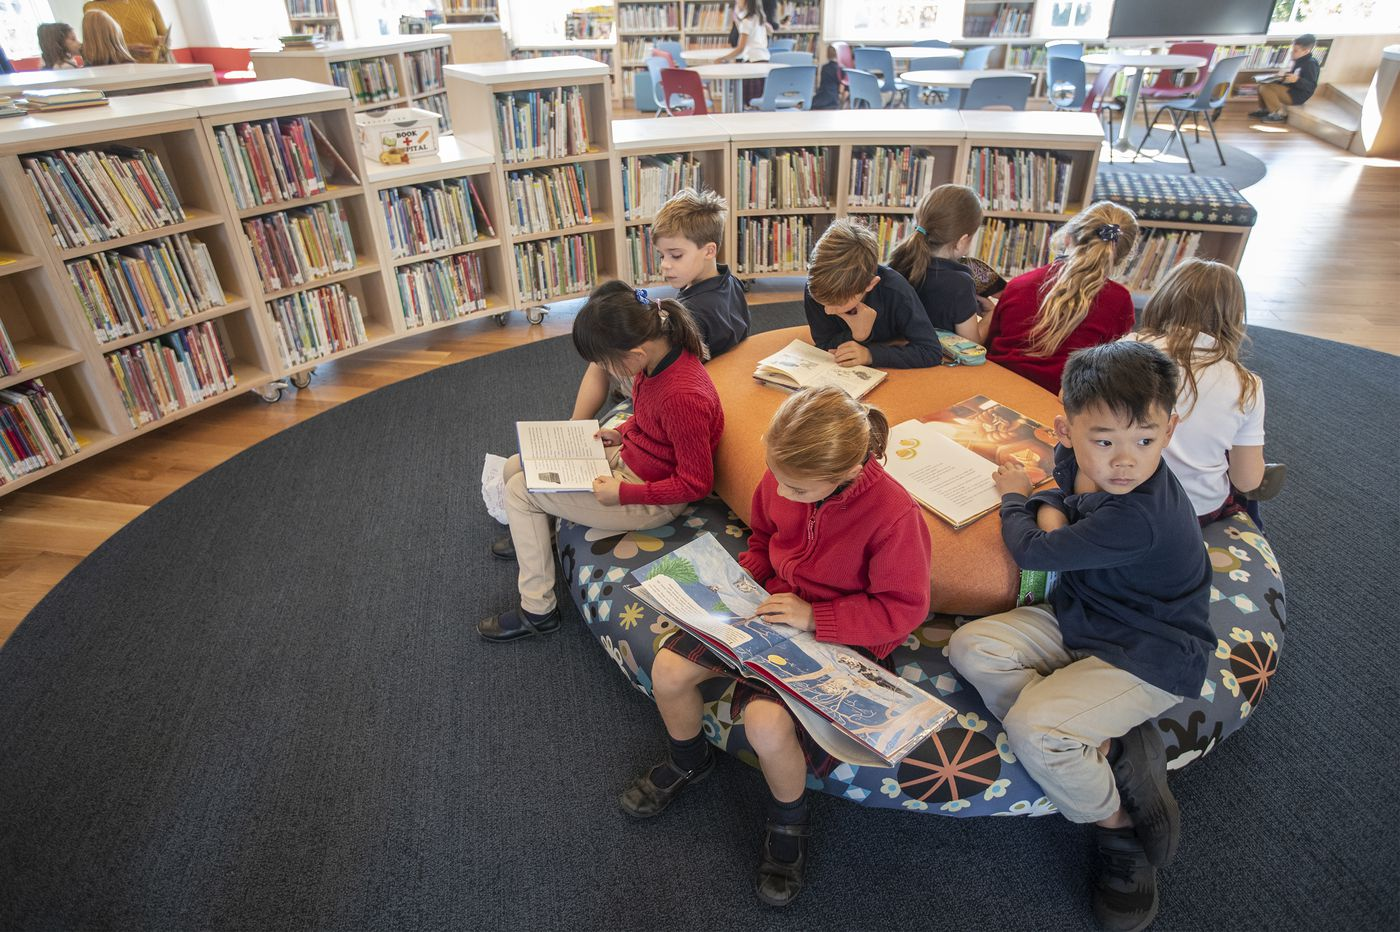 'It feels like you're in heaven' in suburban private school's new, kid-designed library